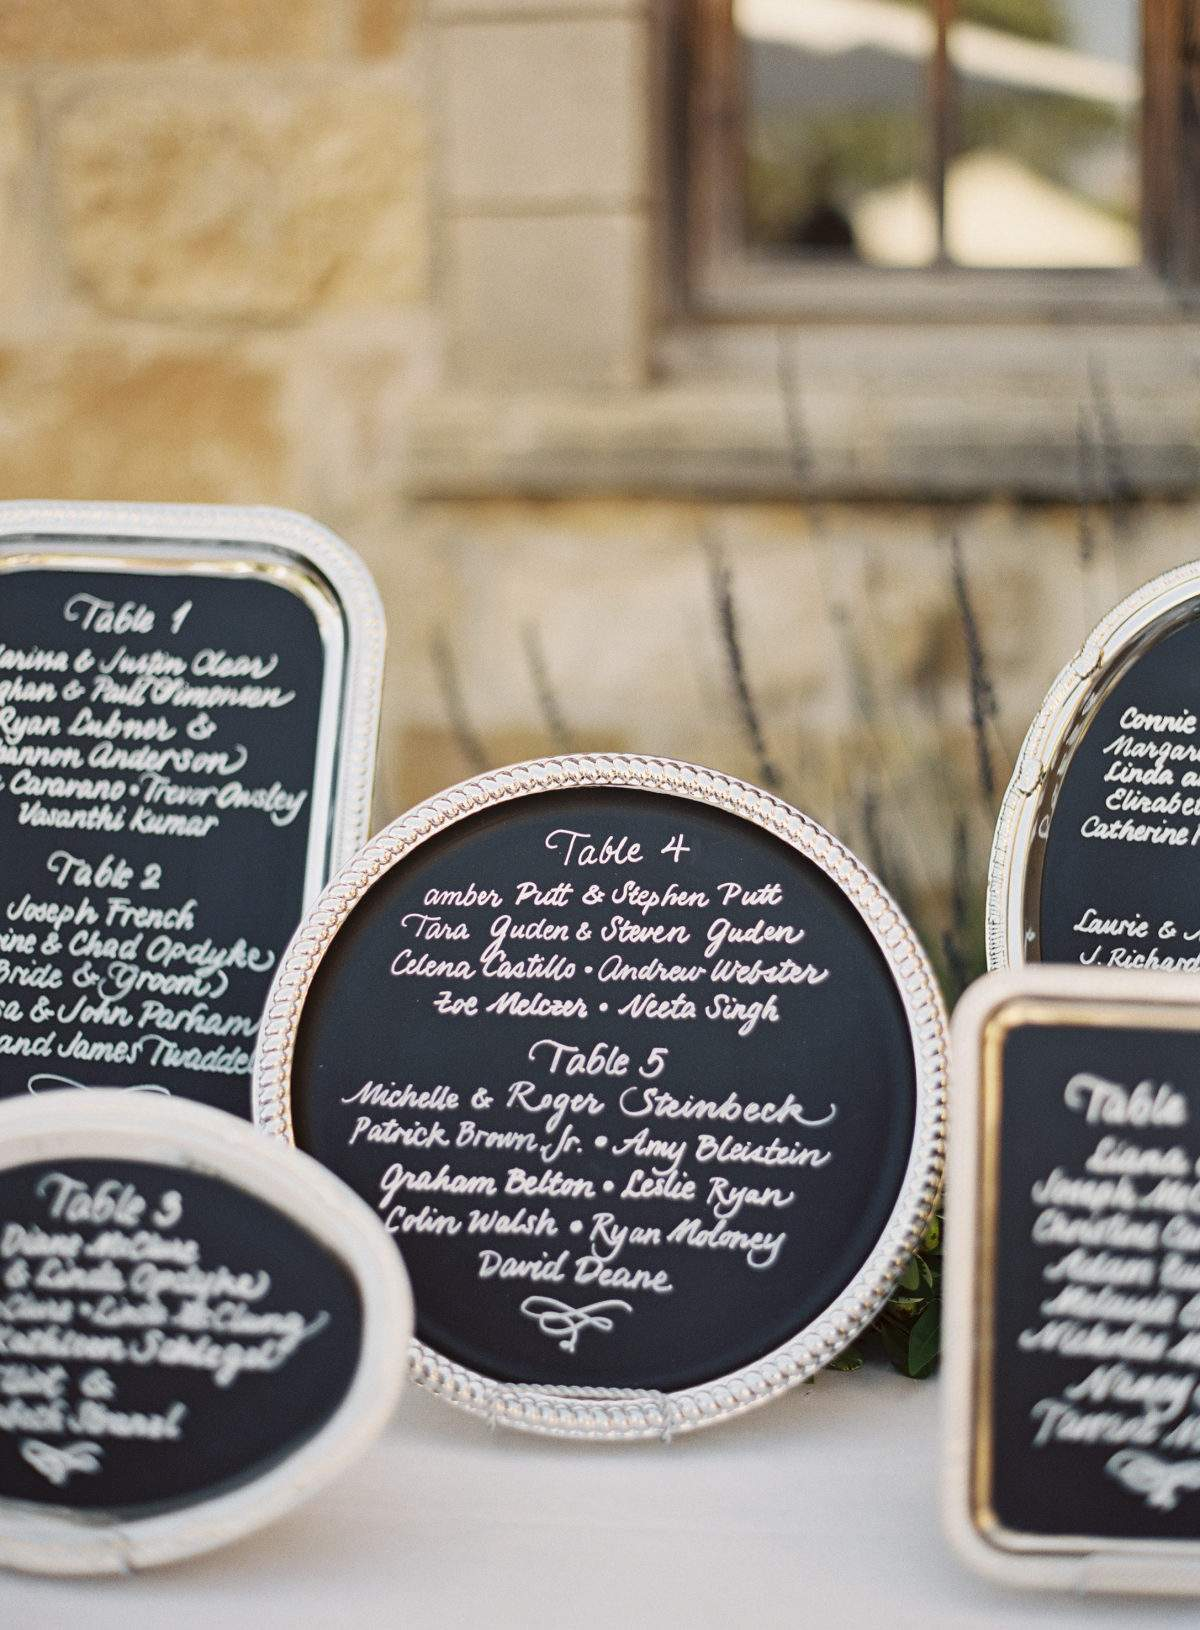 Serving Trays Seating Chart Display